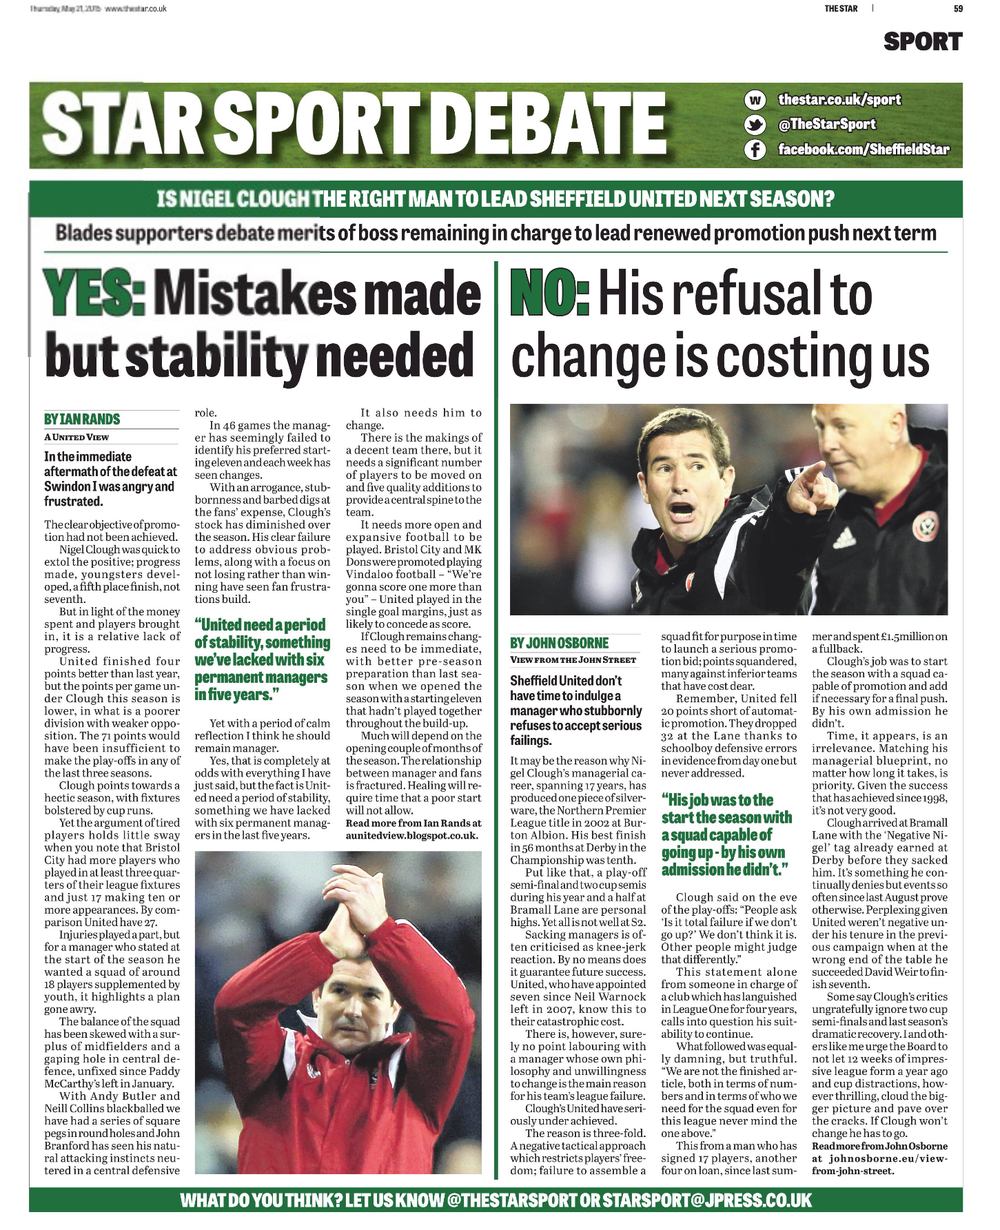 OPPOSING VIEWS:  TODAY'S STAR SPORTS DEBATE REFLECTS THE DIVIDE BETWEEN SHEFFIELD UNITED FANS AND reflects THEIR CONCERNS